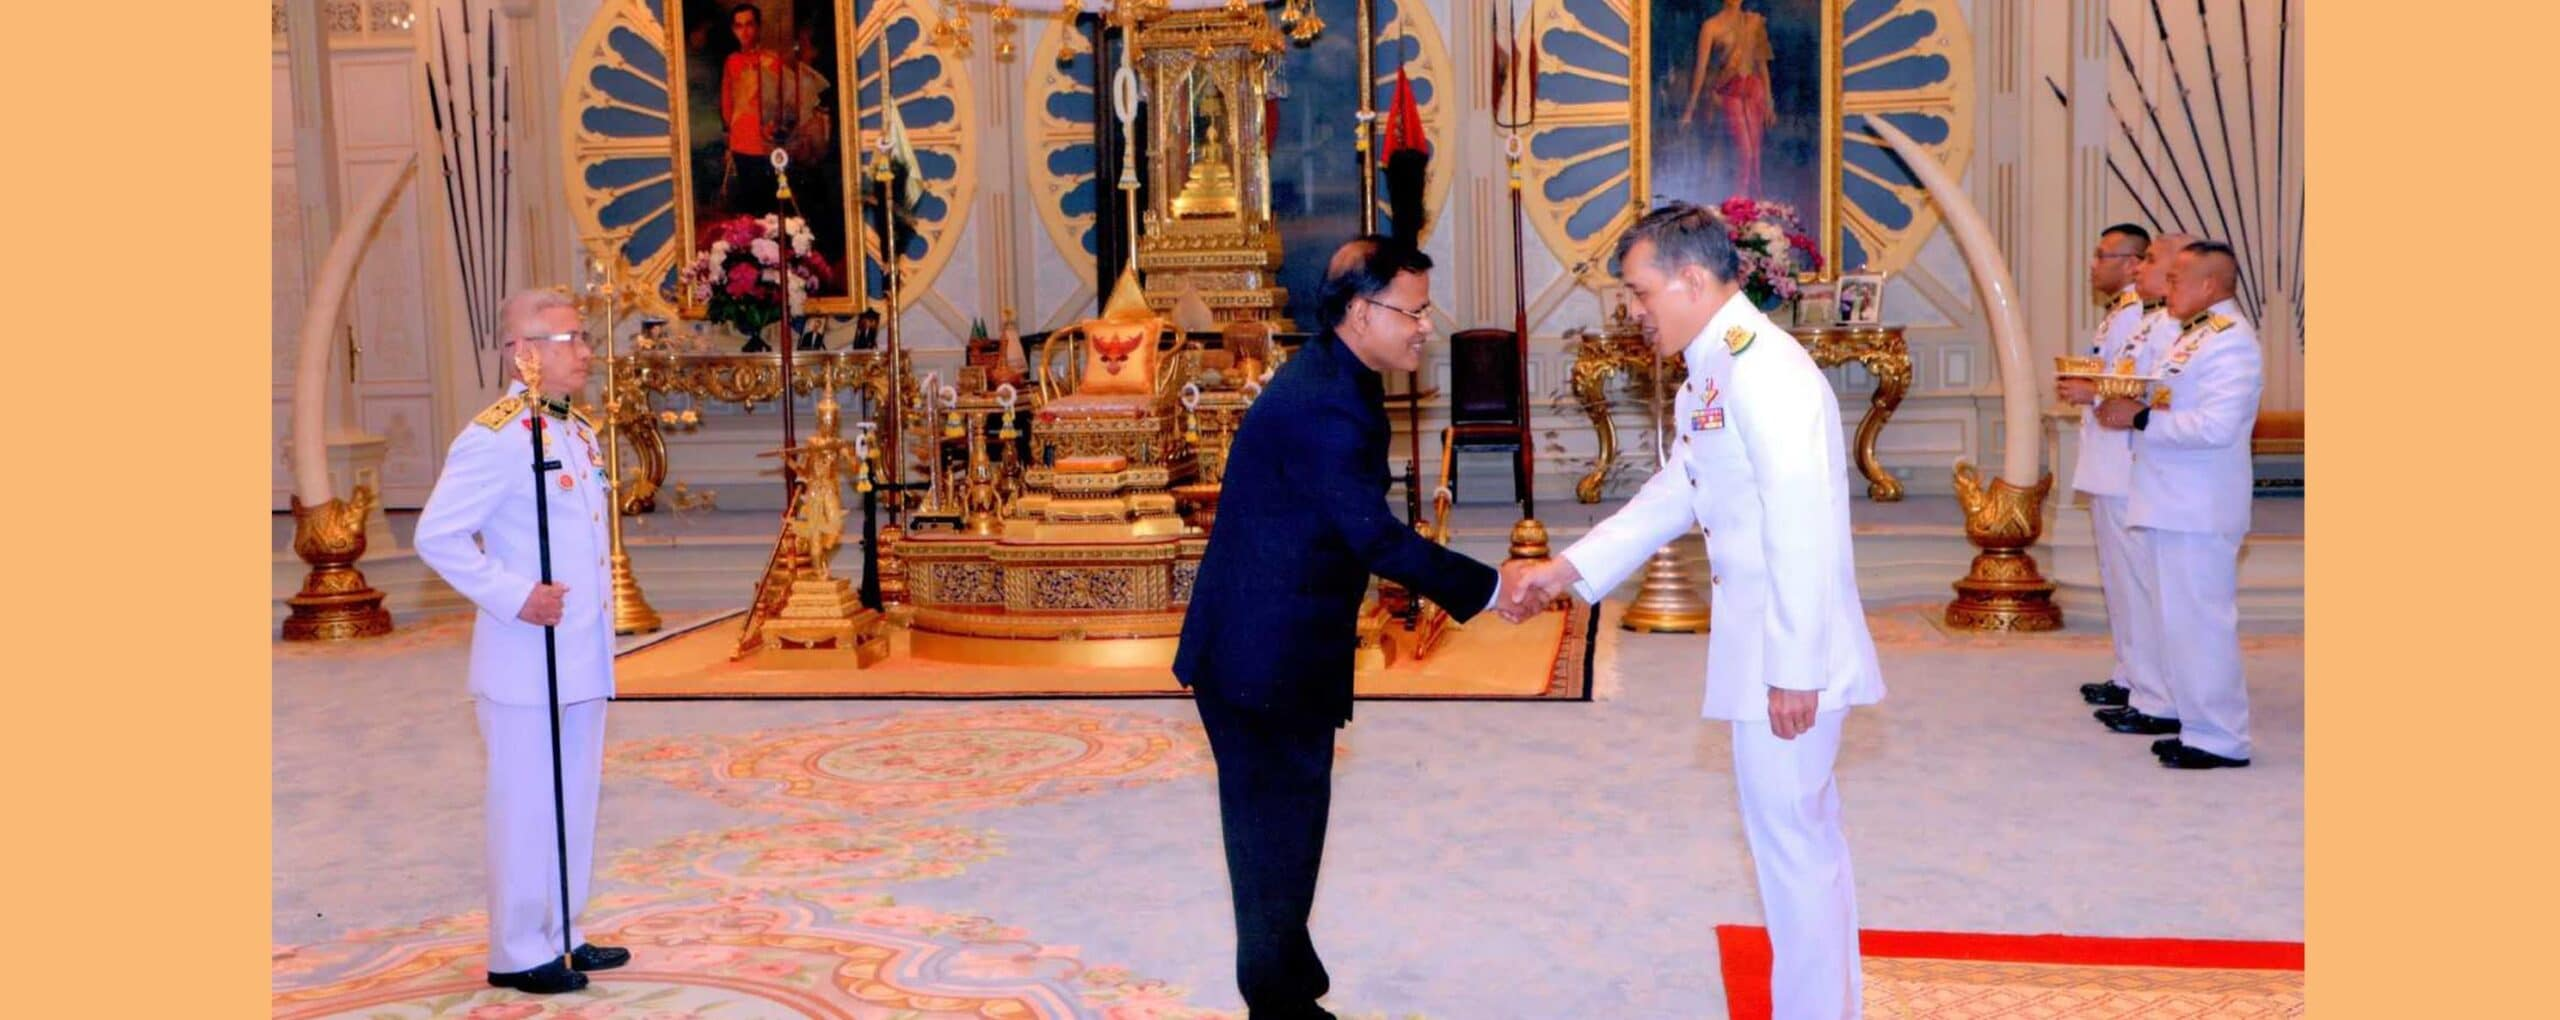 Ambasador of Bangladesh to the kingdom of Thailand H.E. Mr. Md. Nazmul Quaunine is presenting his Credential to His Majesty King of Thailand Maha Vajiralongkorn